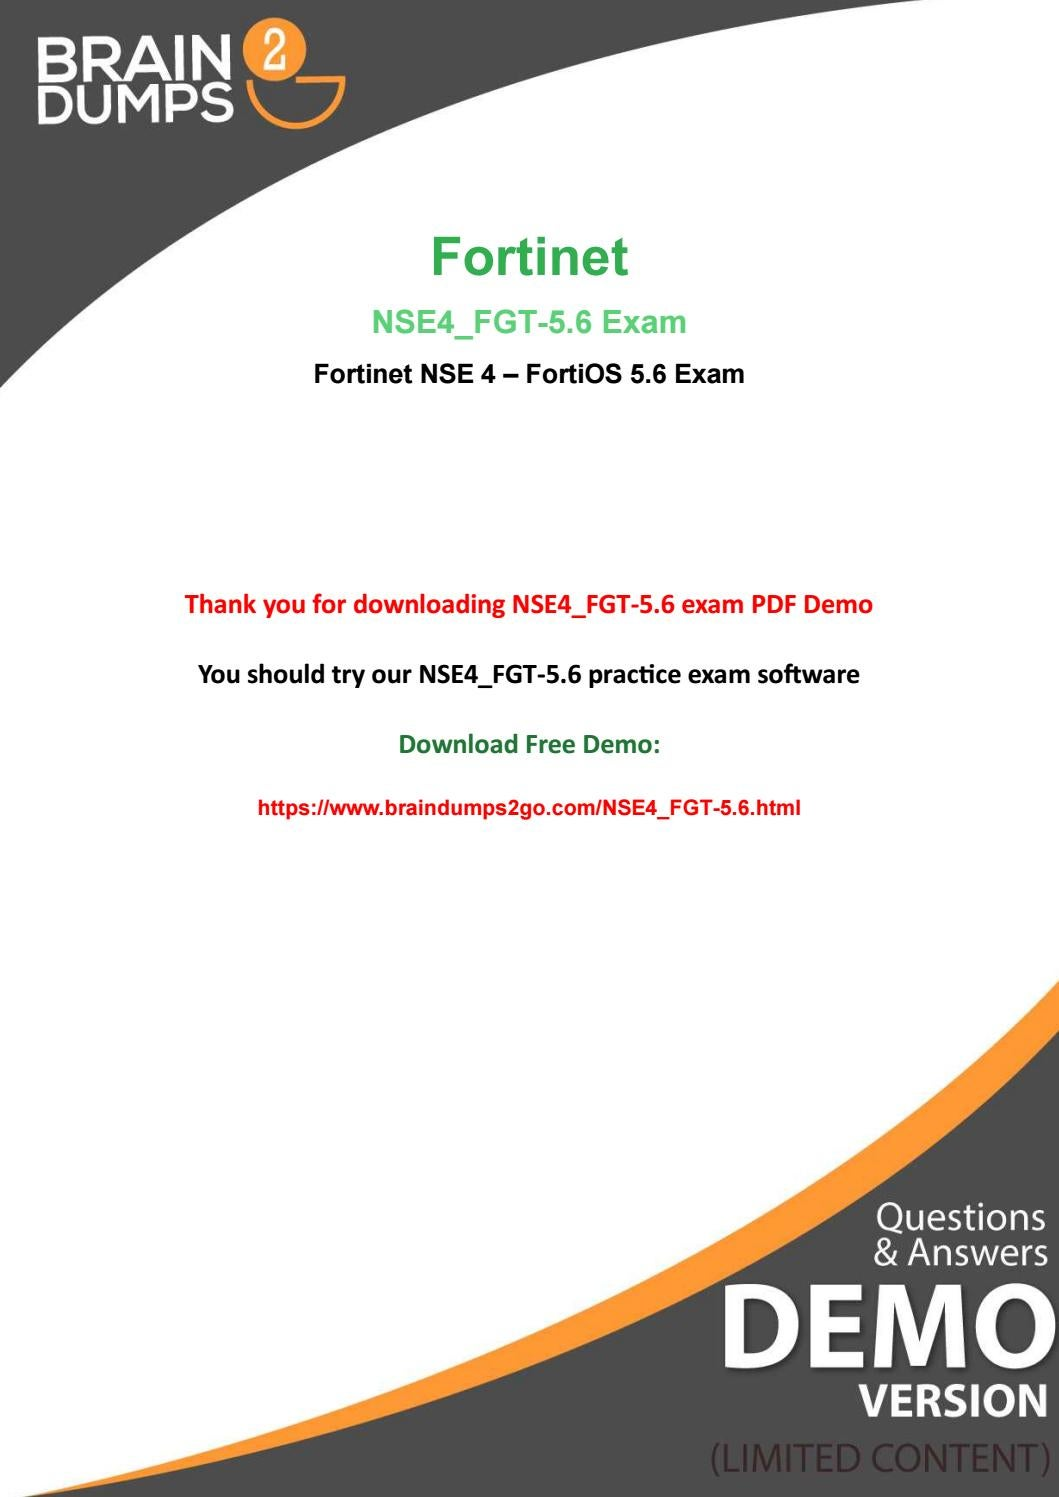 Purchase Real Fortinet NSE4_FGT-5 6 Exam Dumps And Get 20